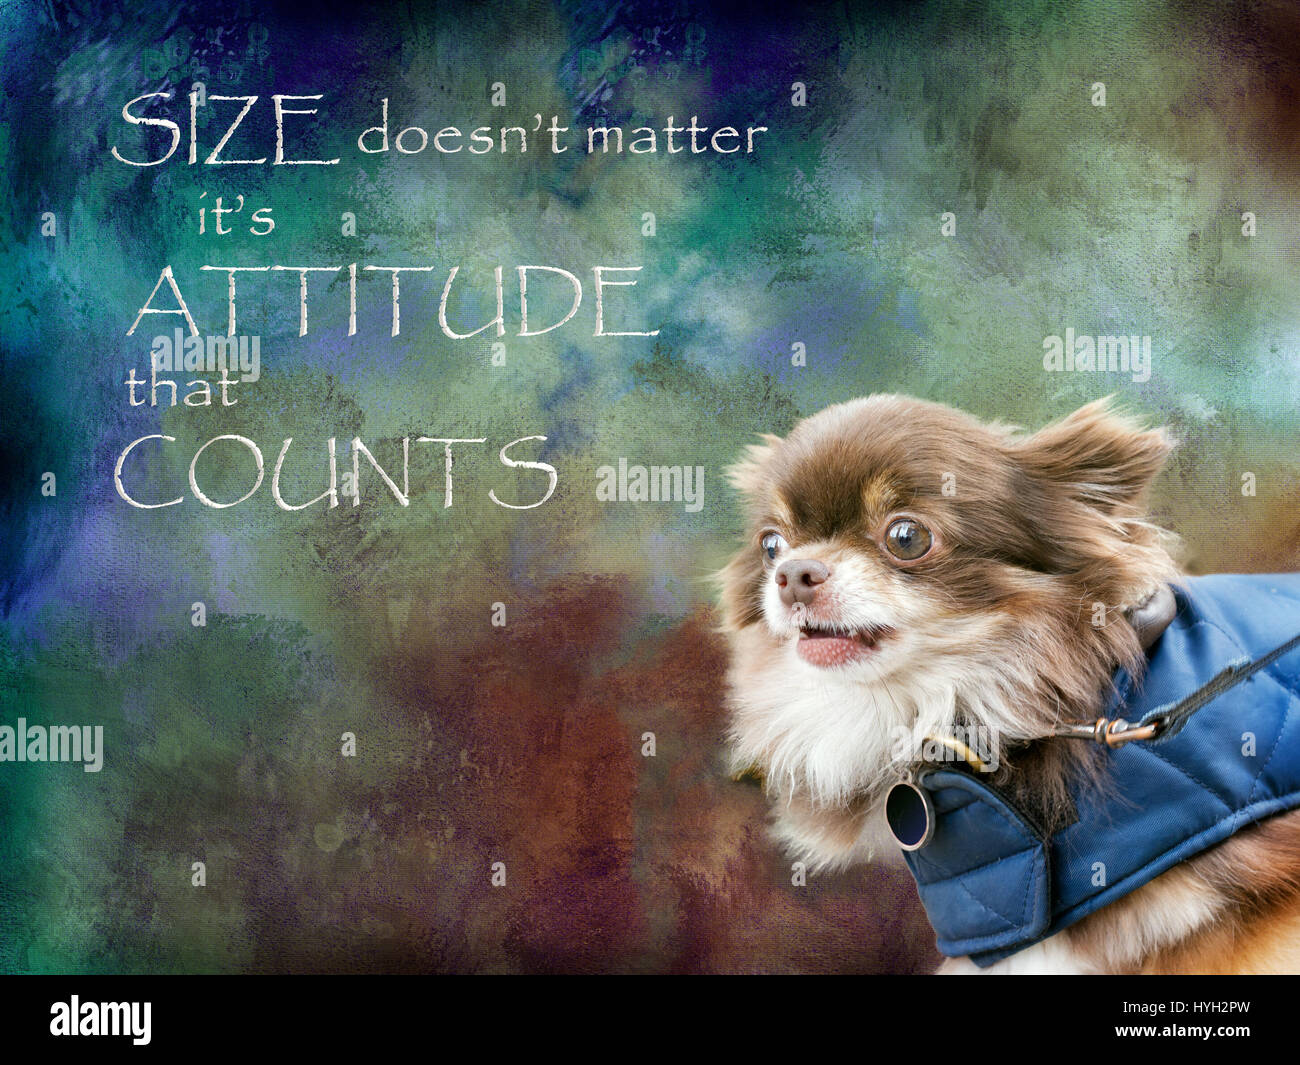 Size doesn't matter it's attitude that counts. Ferocious chihuahua dog. - Stock Image